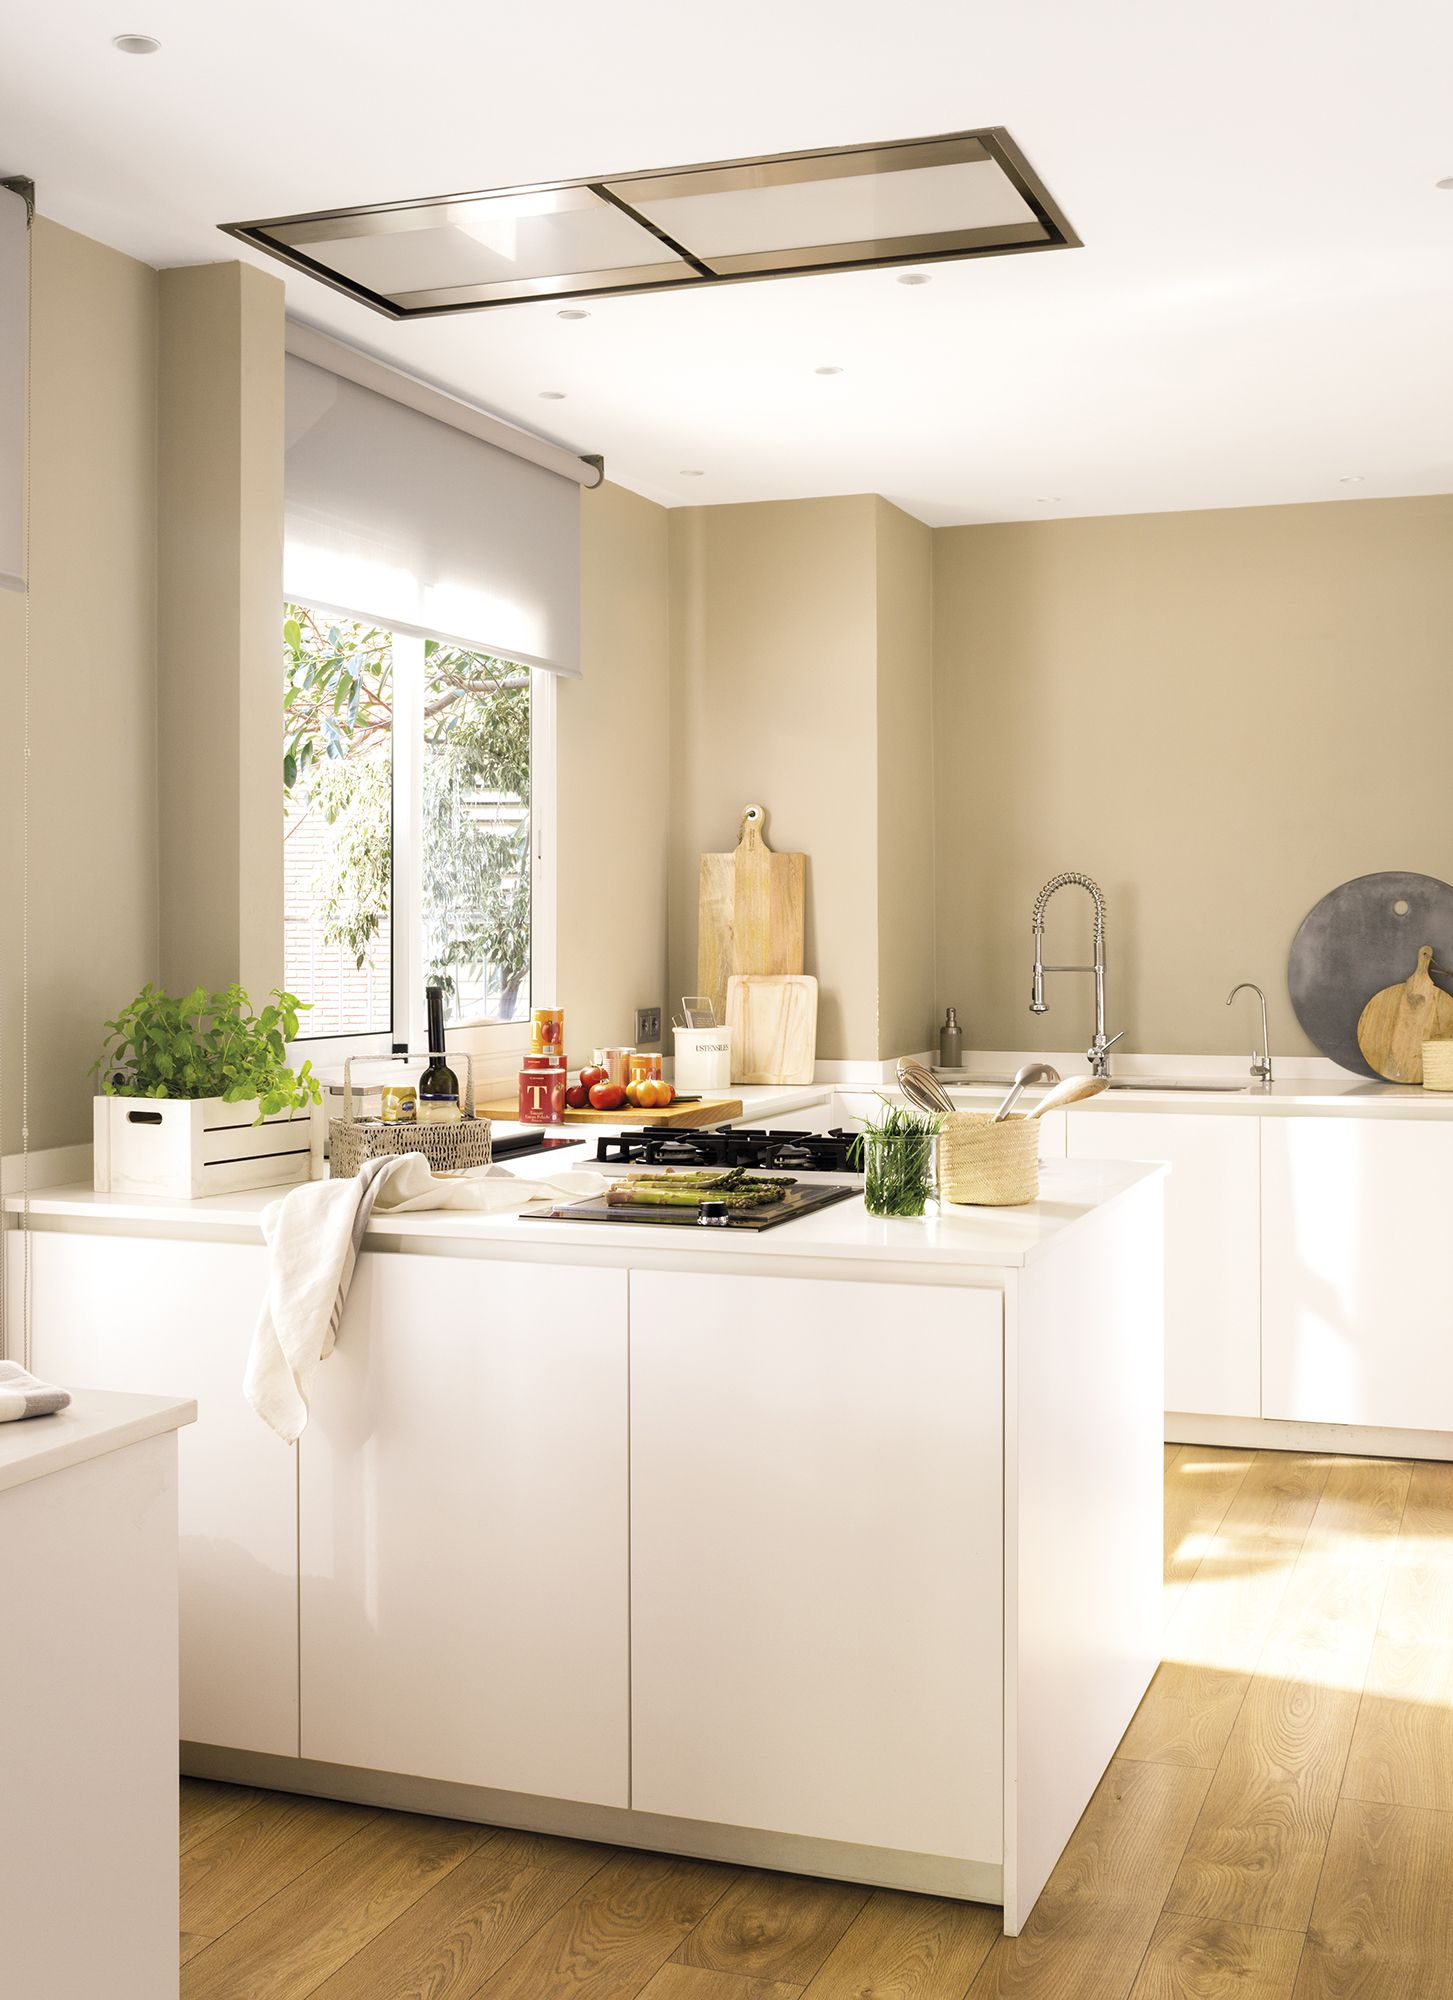 La Suerte De Cocinar Con Vistas In 2019 Kitchen Kitchen